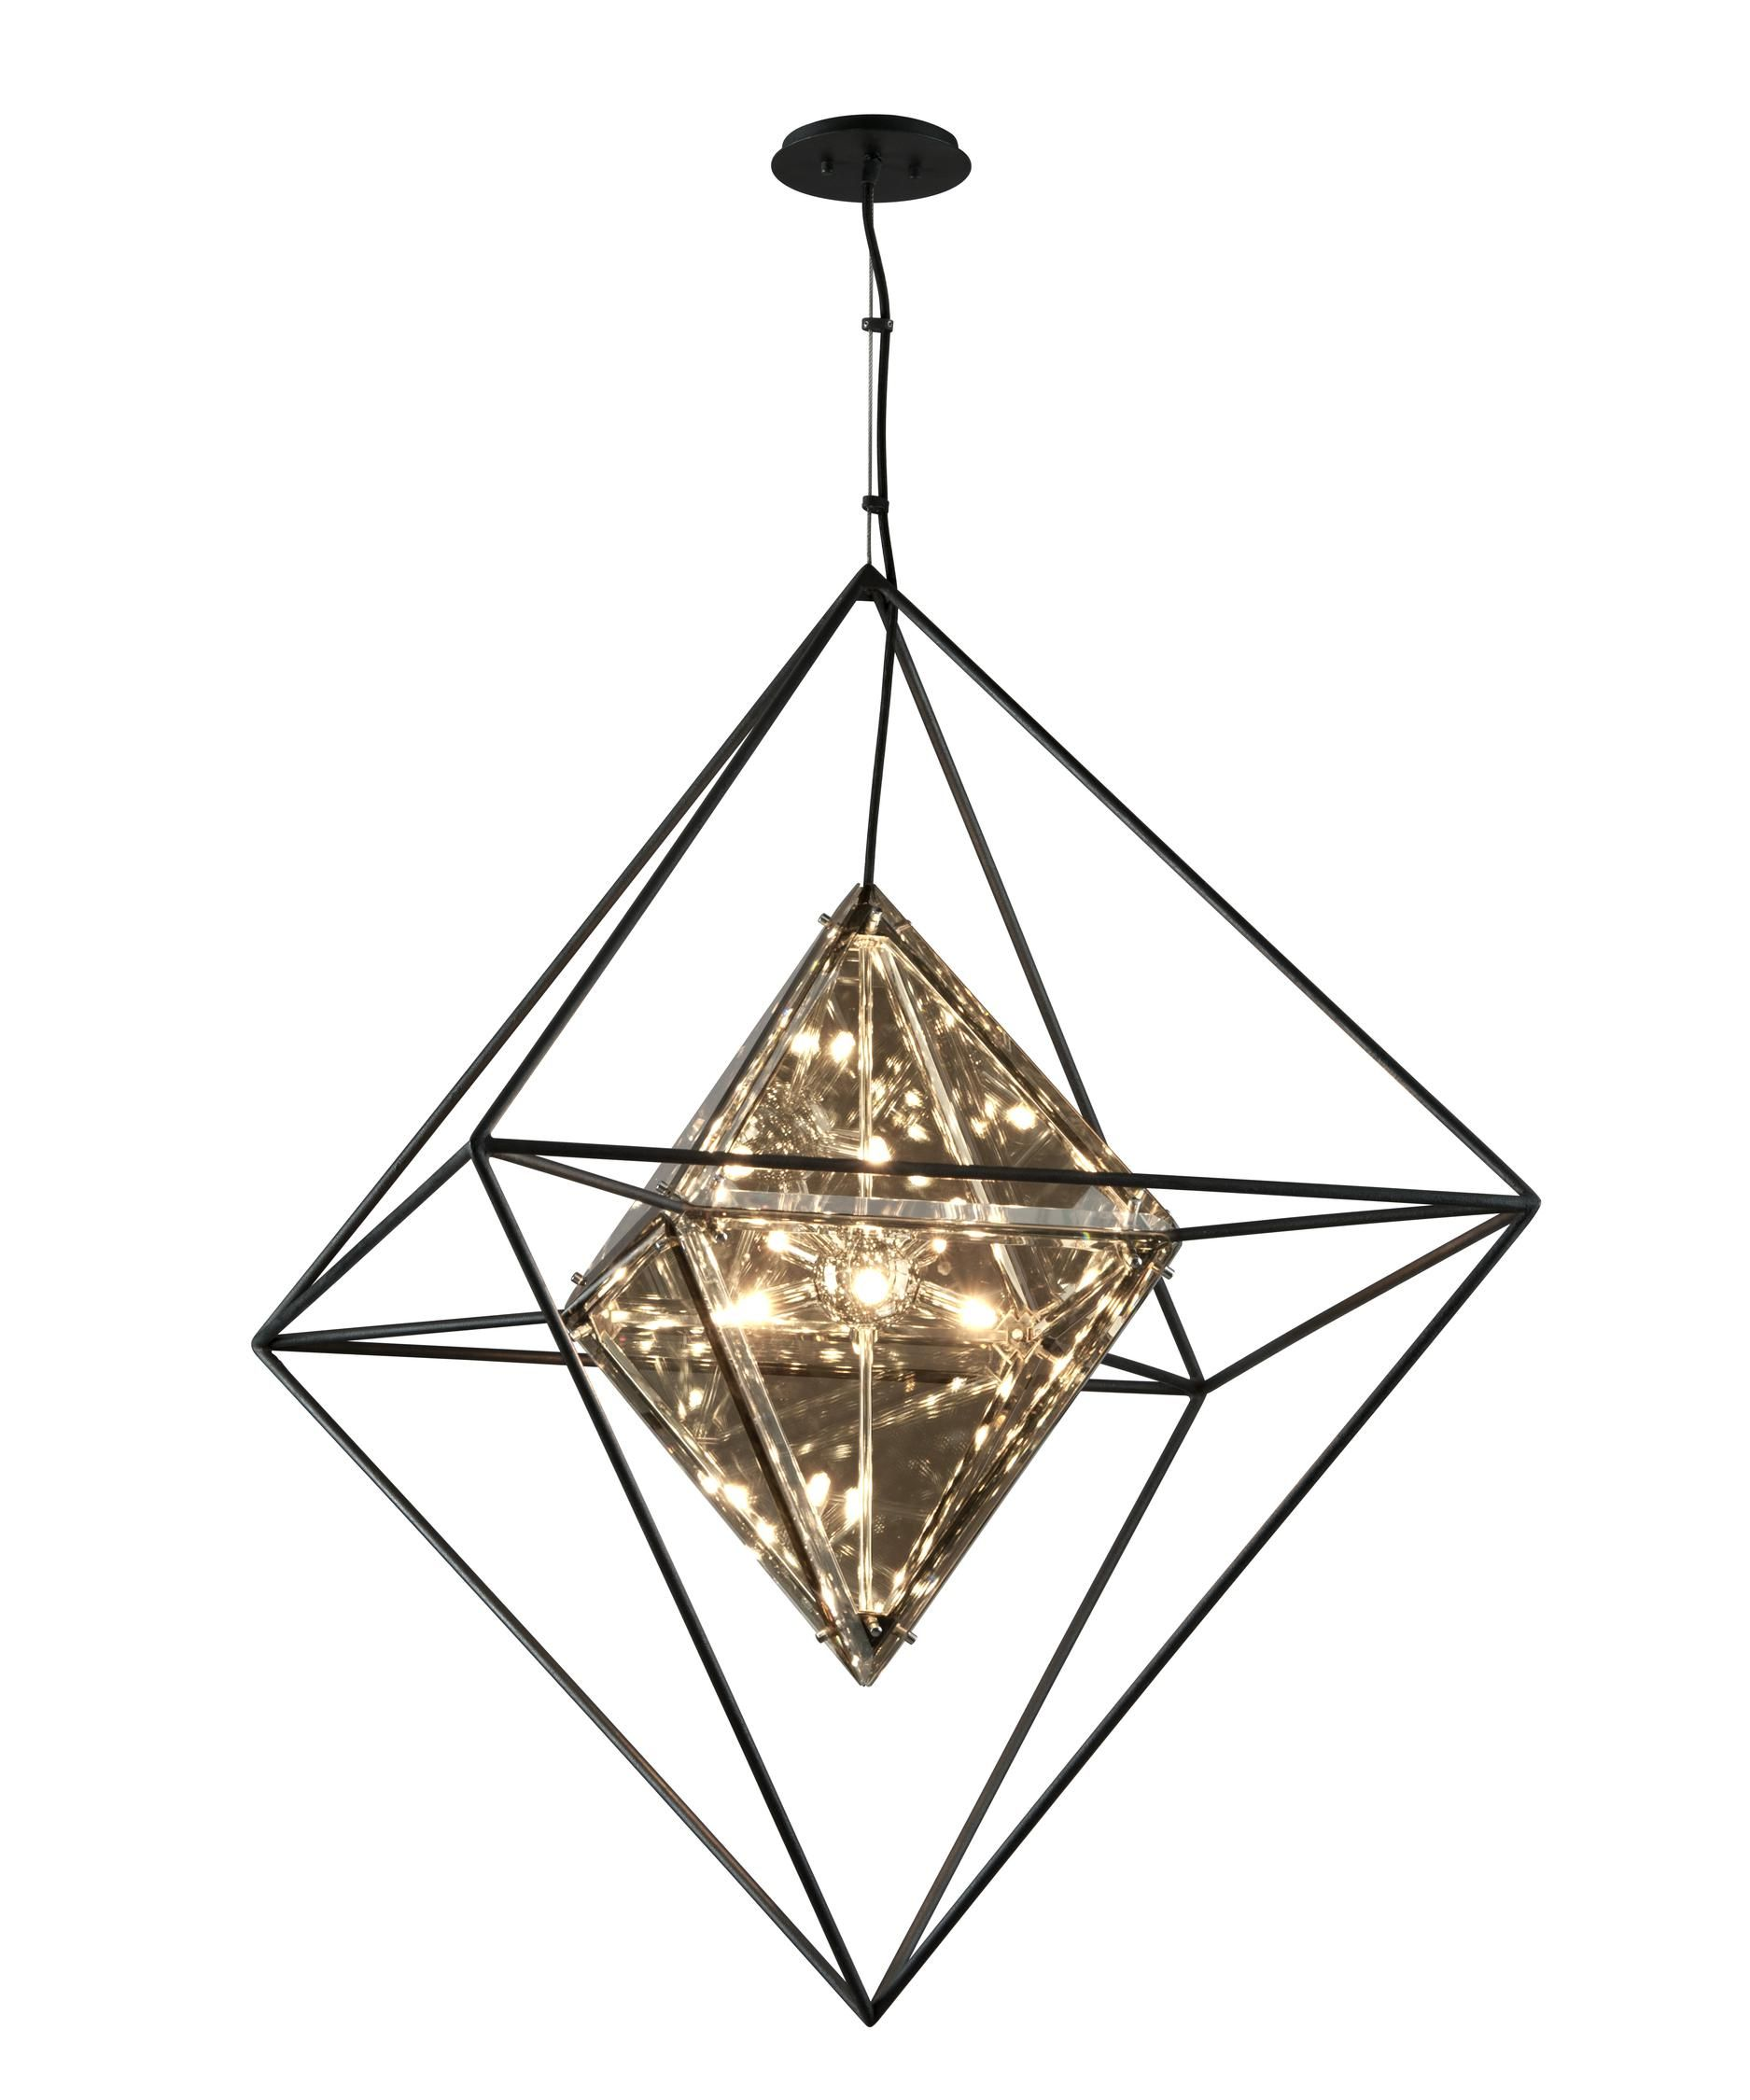 Epic 30 Inch Large Pendant by Troy Lighting | Lighting